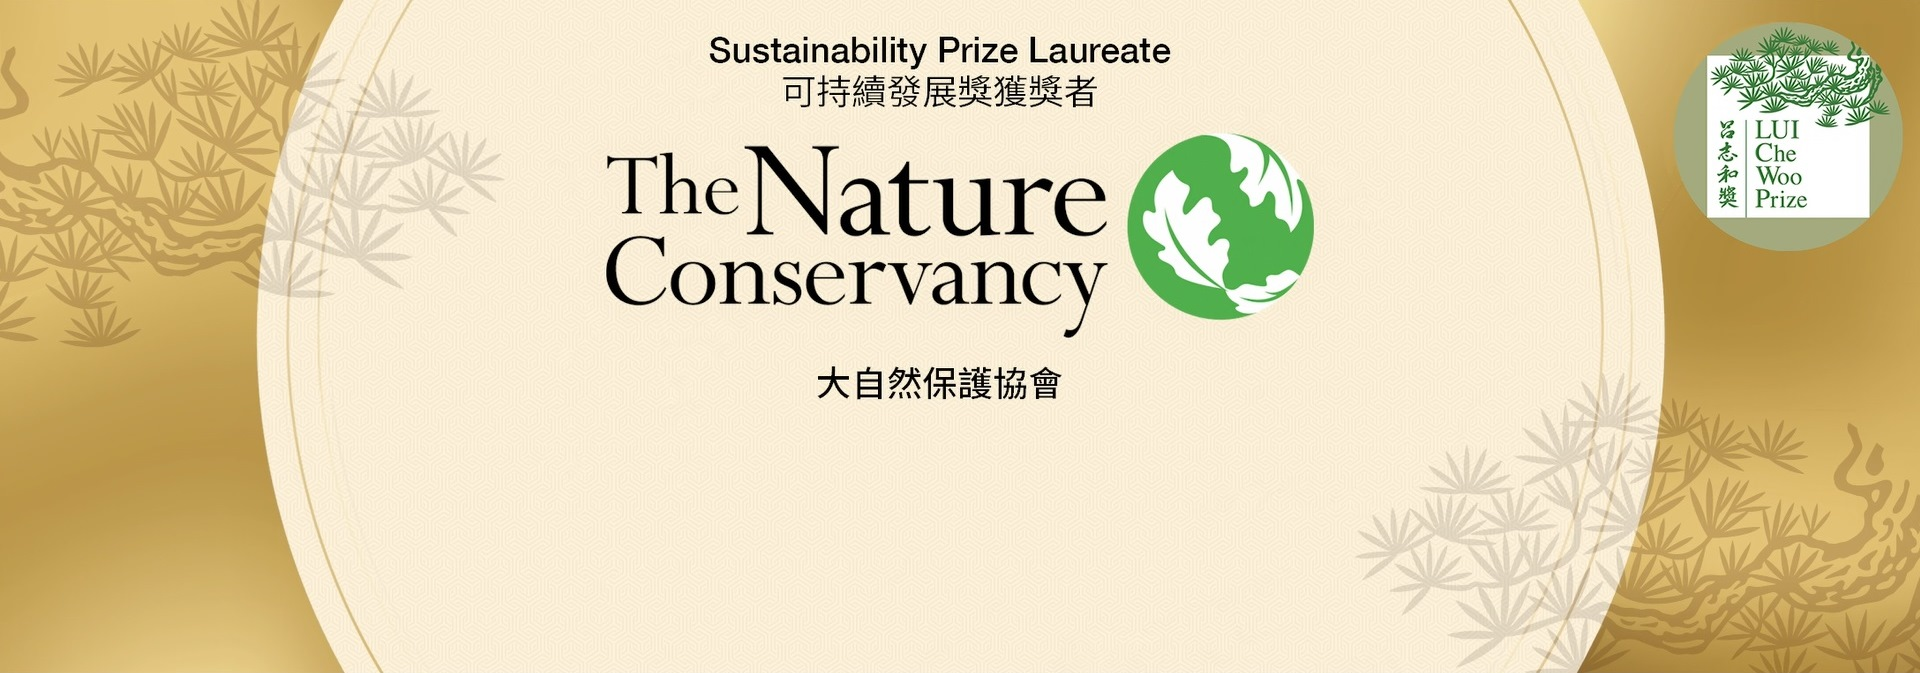 Sustainability Prize 2019 Laureate The Nature Conservancy (Full Version)